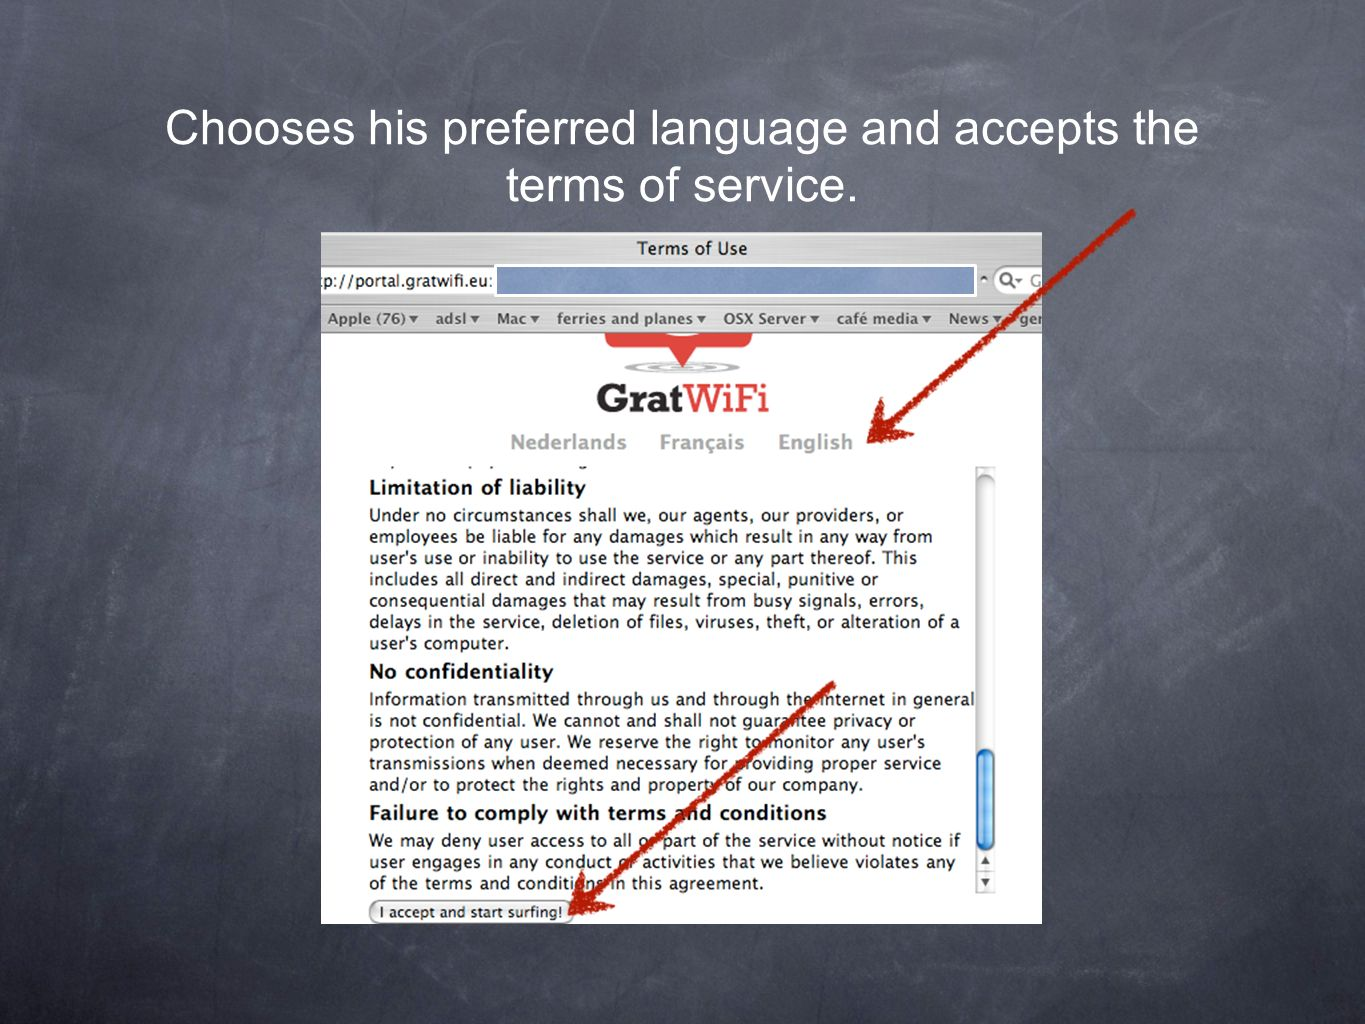 Chooses his preferred language and accepts the terms of service.